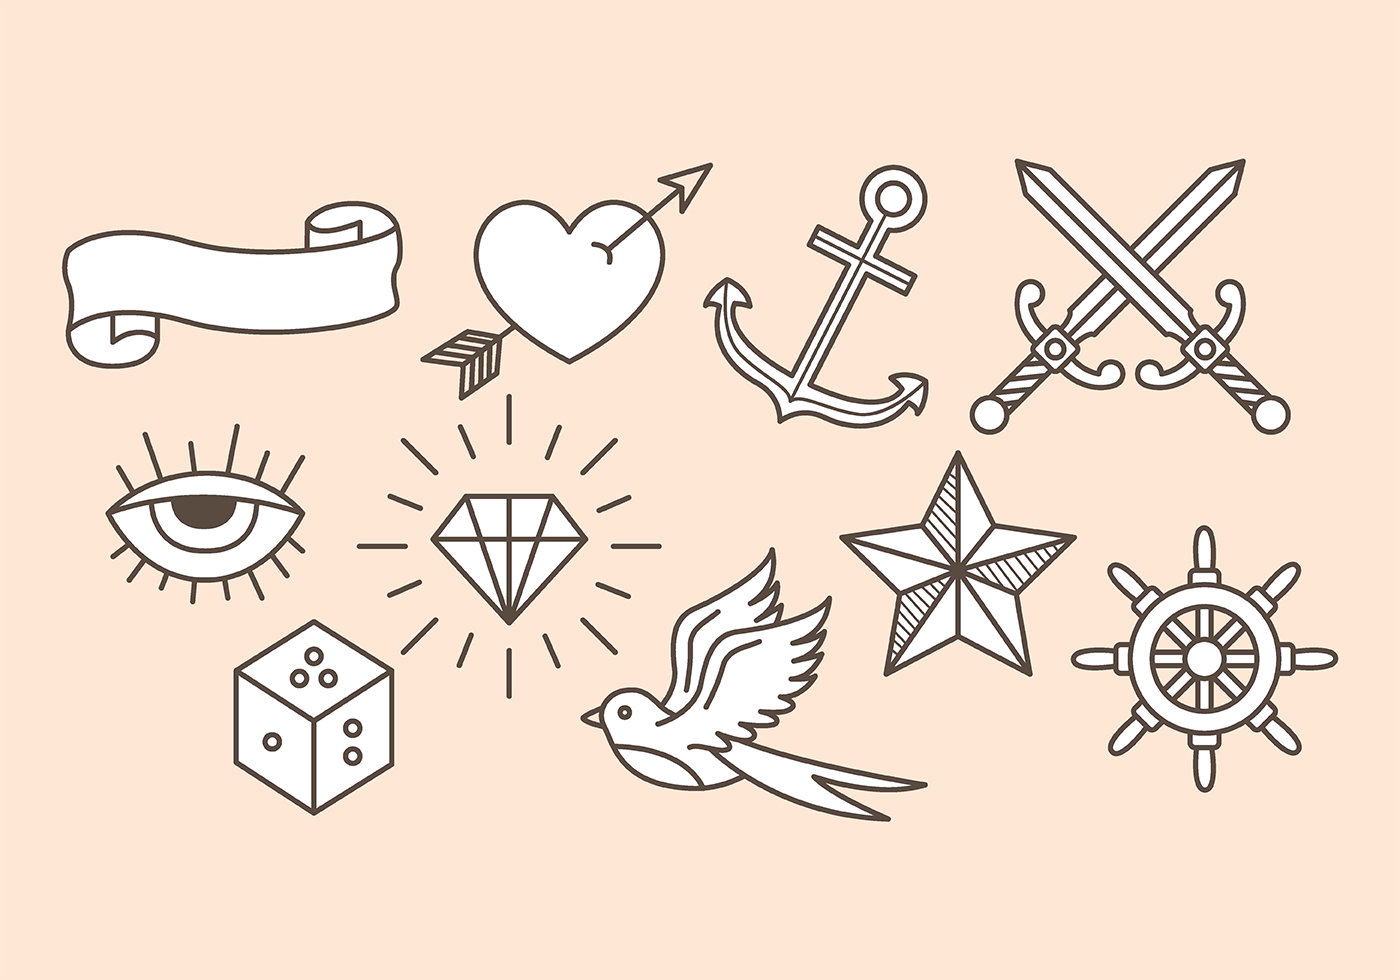 old school tattoo icons download free vector art stock graphics images. Black Bedroom Furniture Sets. Home Design Ideas